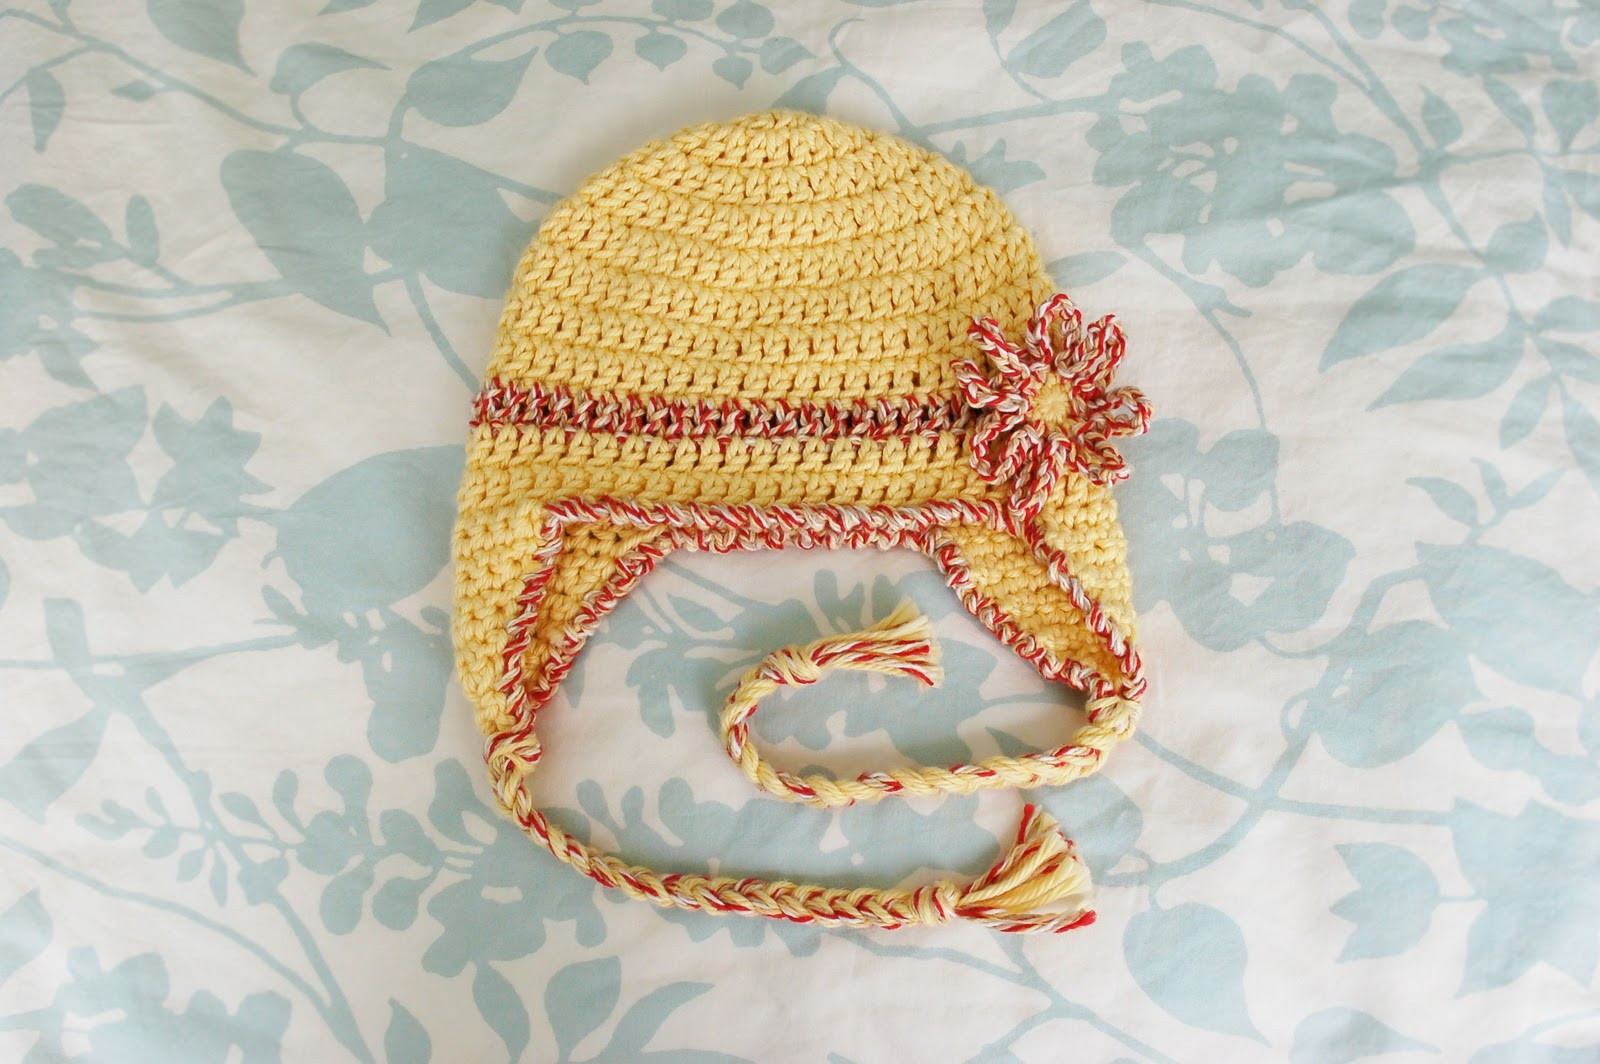 New Alli Crafts Free Pattern Baby Earflap Hat 6 Months Free Crochet Infant Hat Patterns Of Luxury Baby Hat Crochet Pattern Modern Homemakers Free Crochet Infant Hat Patterns